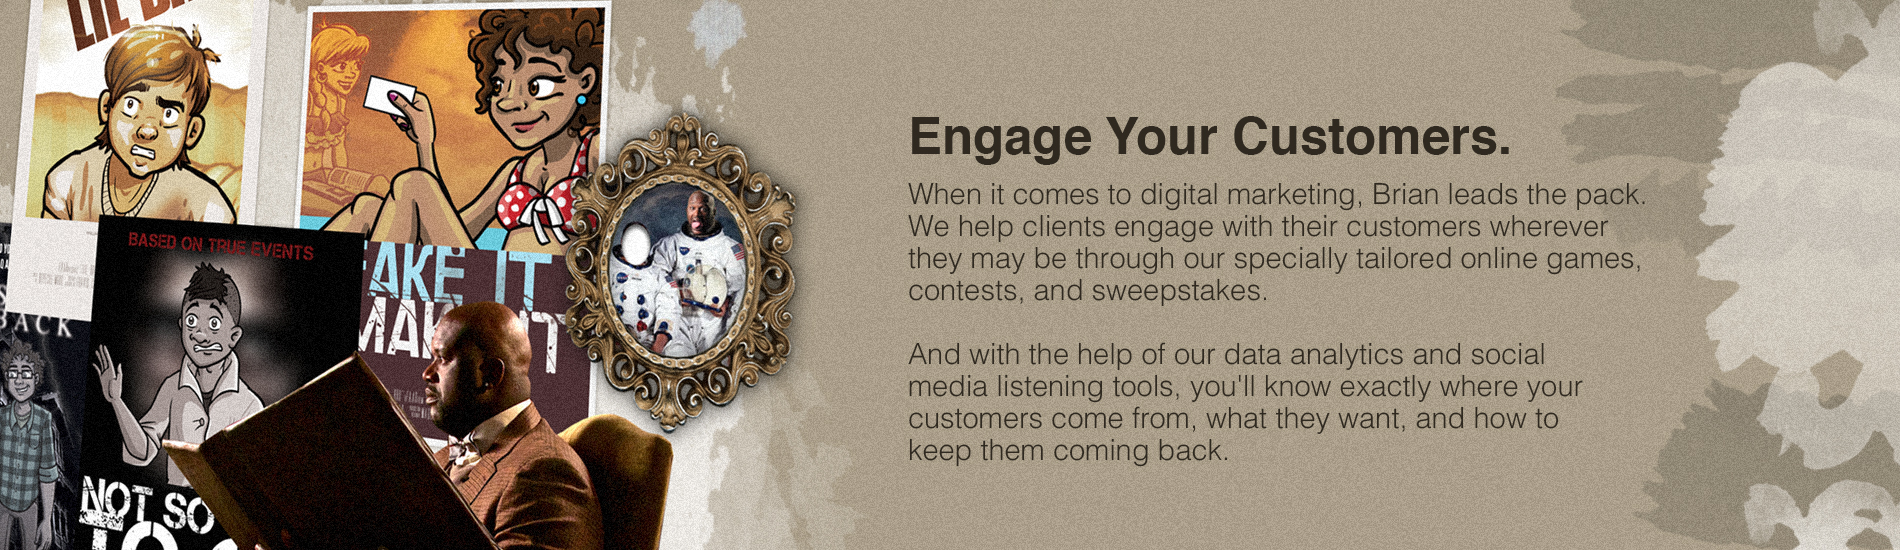 Engage Your Customers. Hero